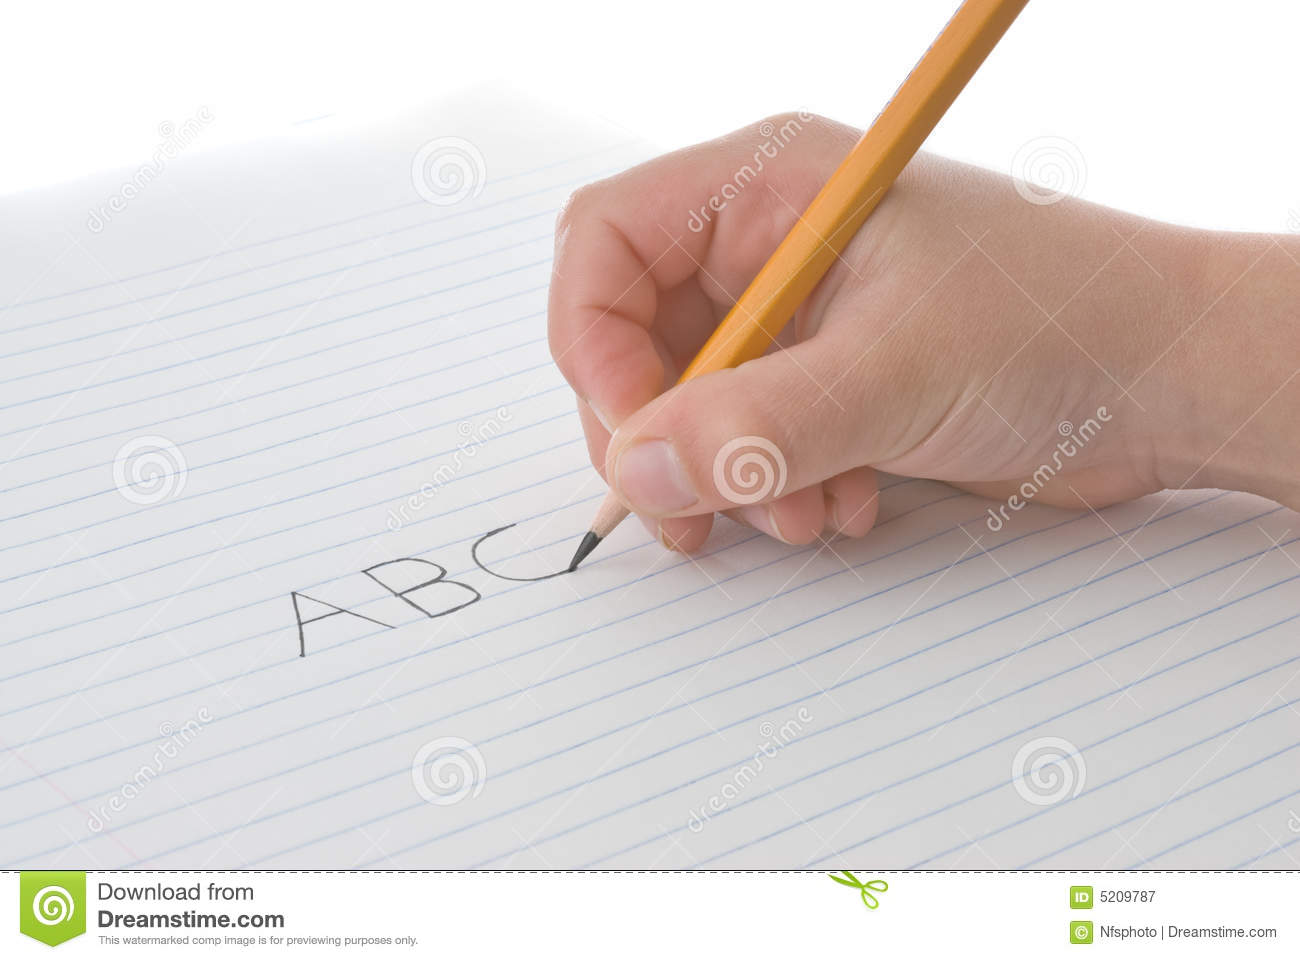 Hand writing on paper